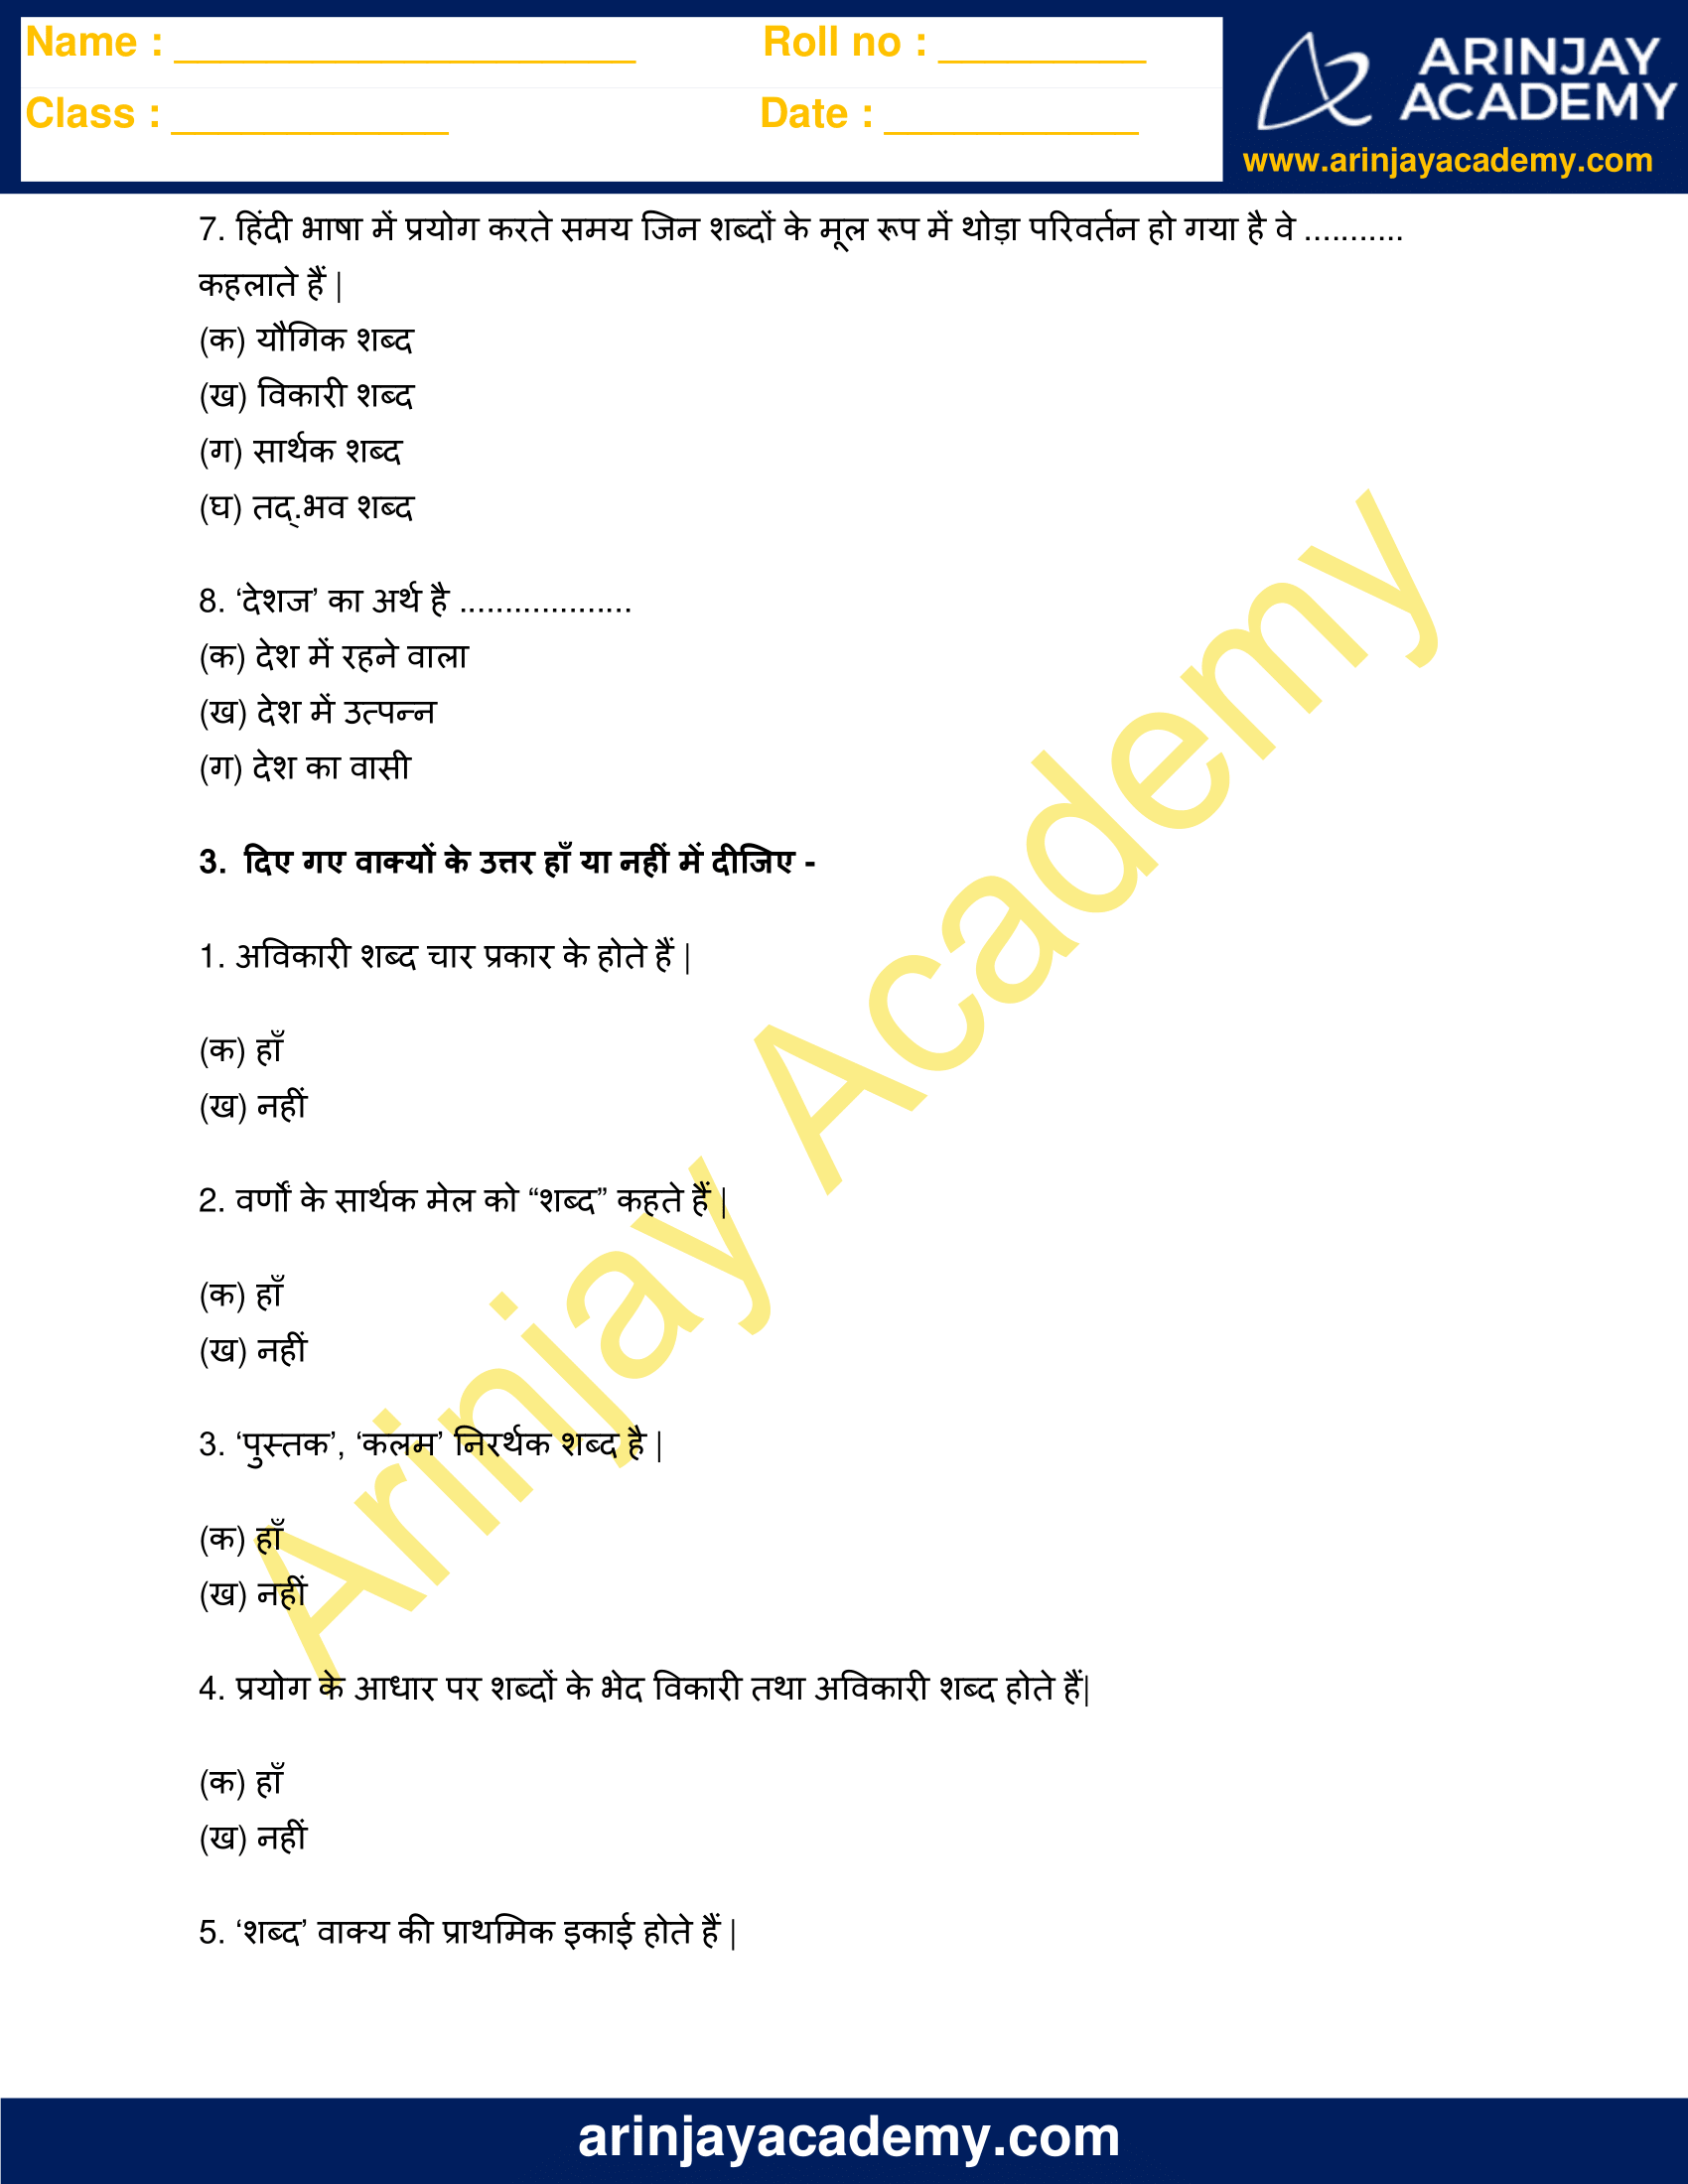 Shabd in Hindi Worksheet for Class 3 image 4